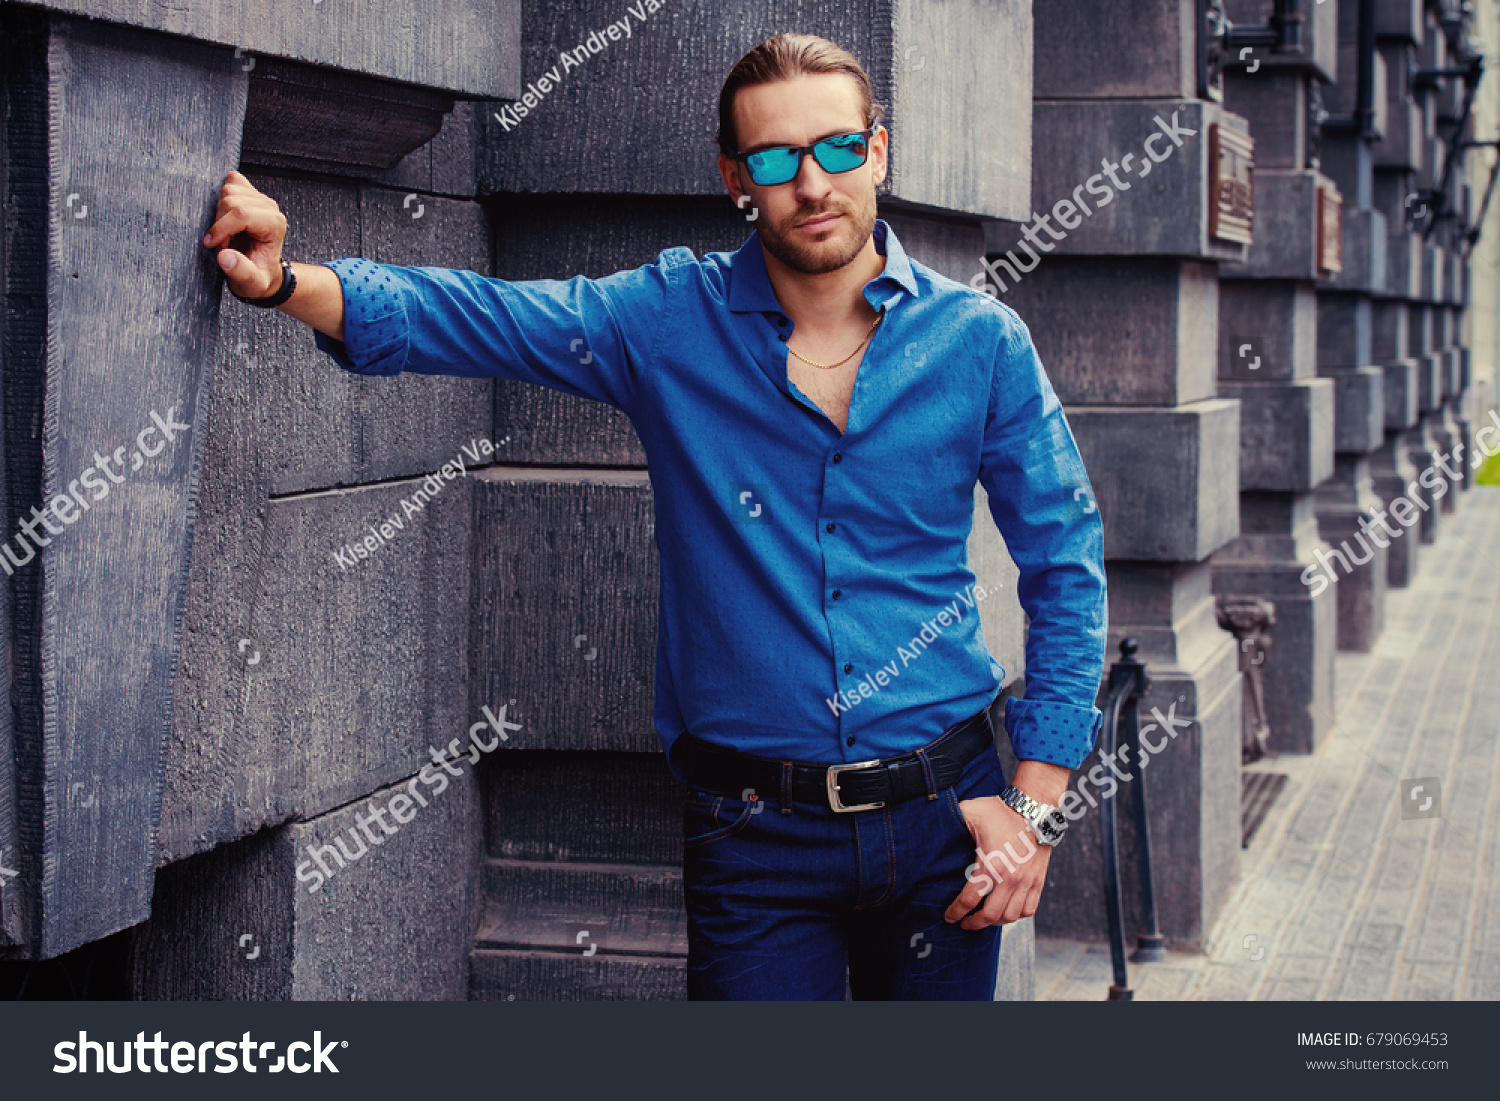 46d0a0a1 Handsome young man in jeans clothes stands on a city street. Men's fashion.